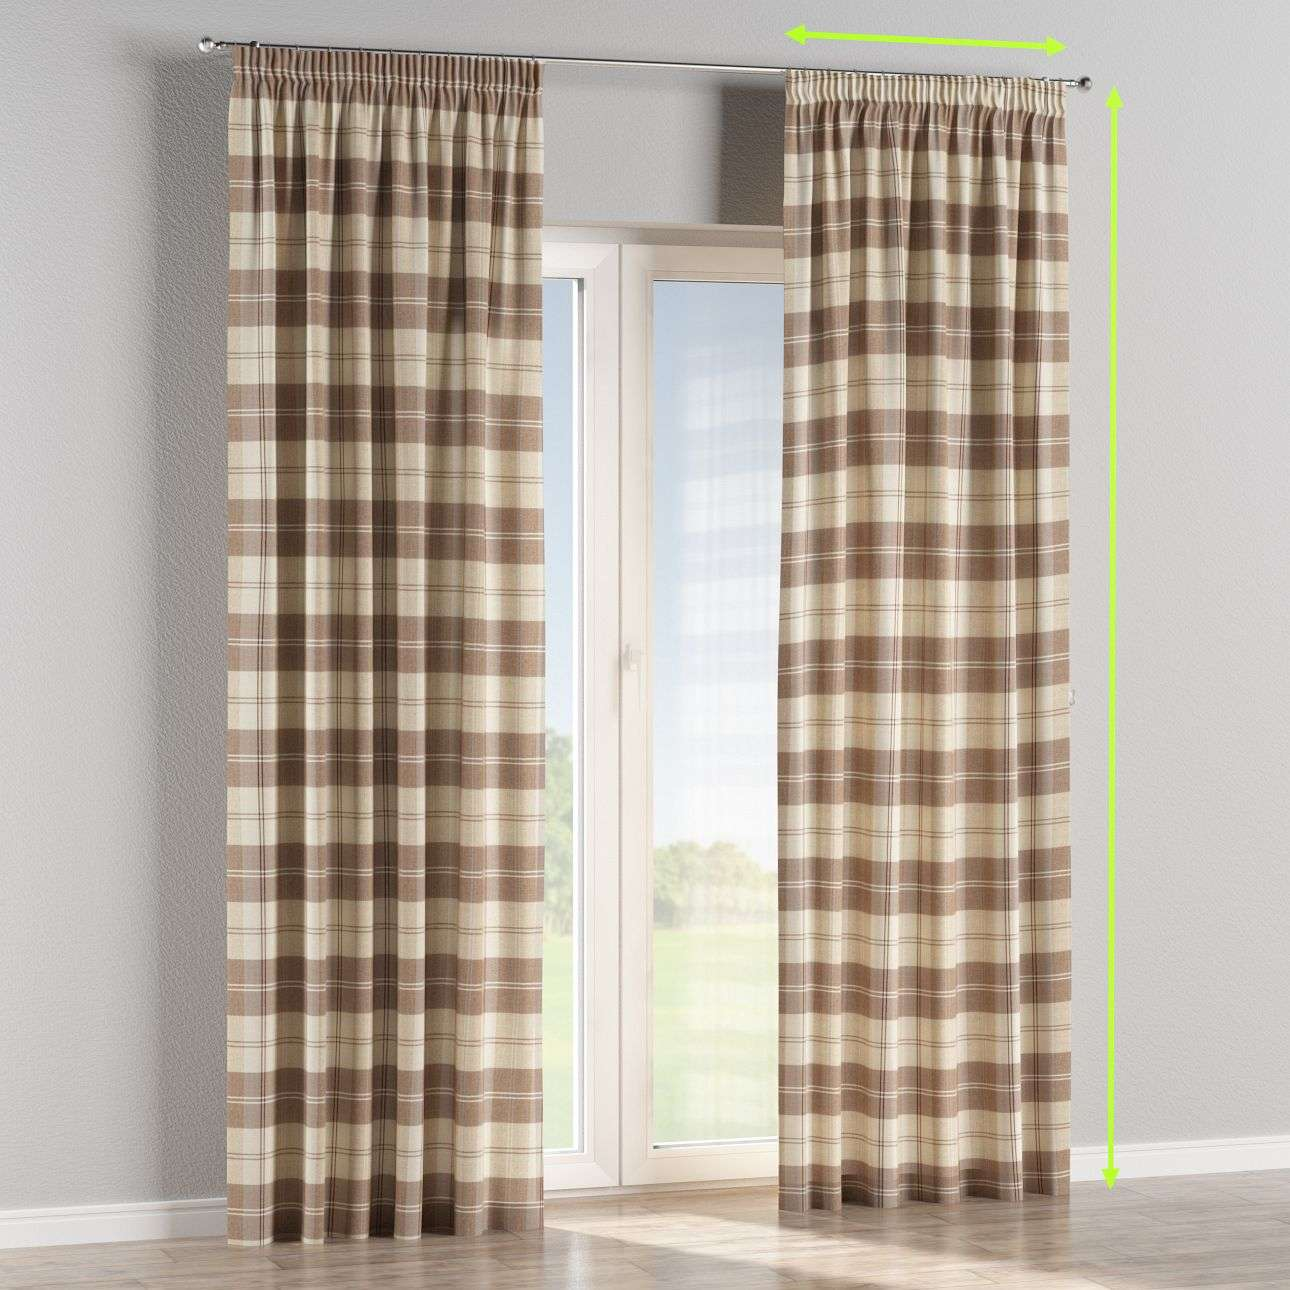 Pencil pleat curtains in collection Edinburgh, fabric: 115-80